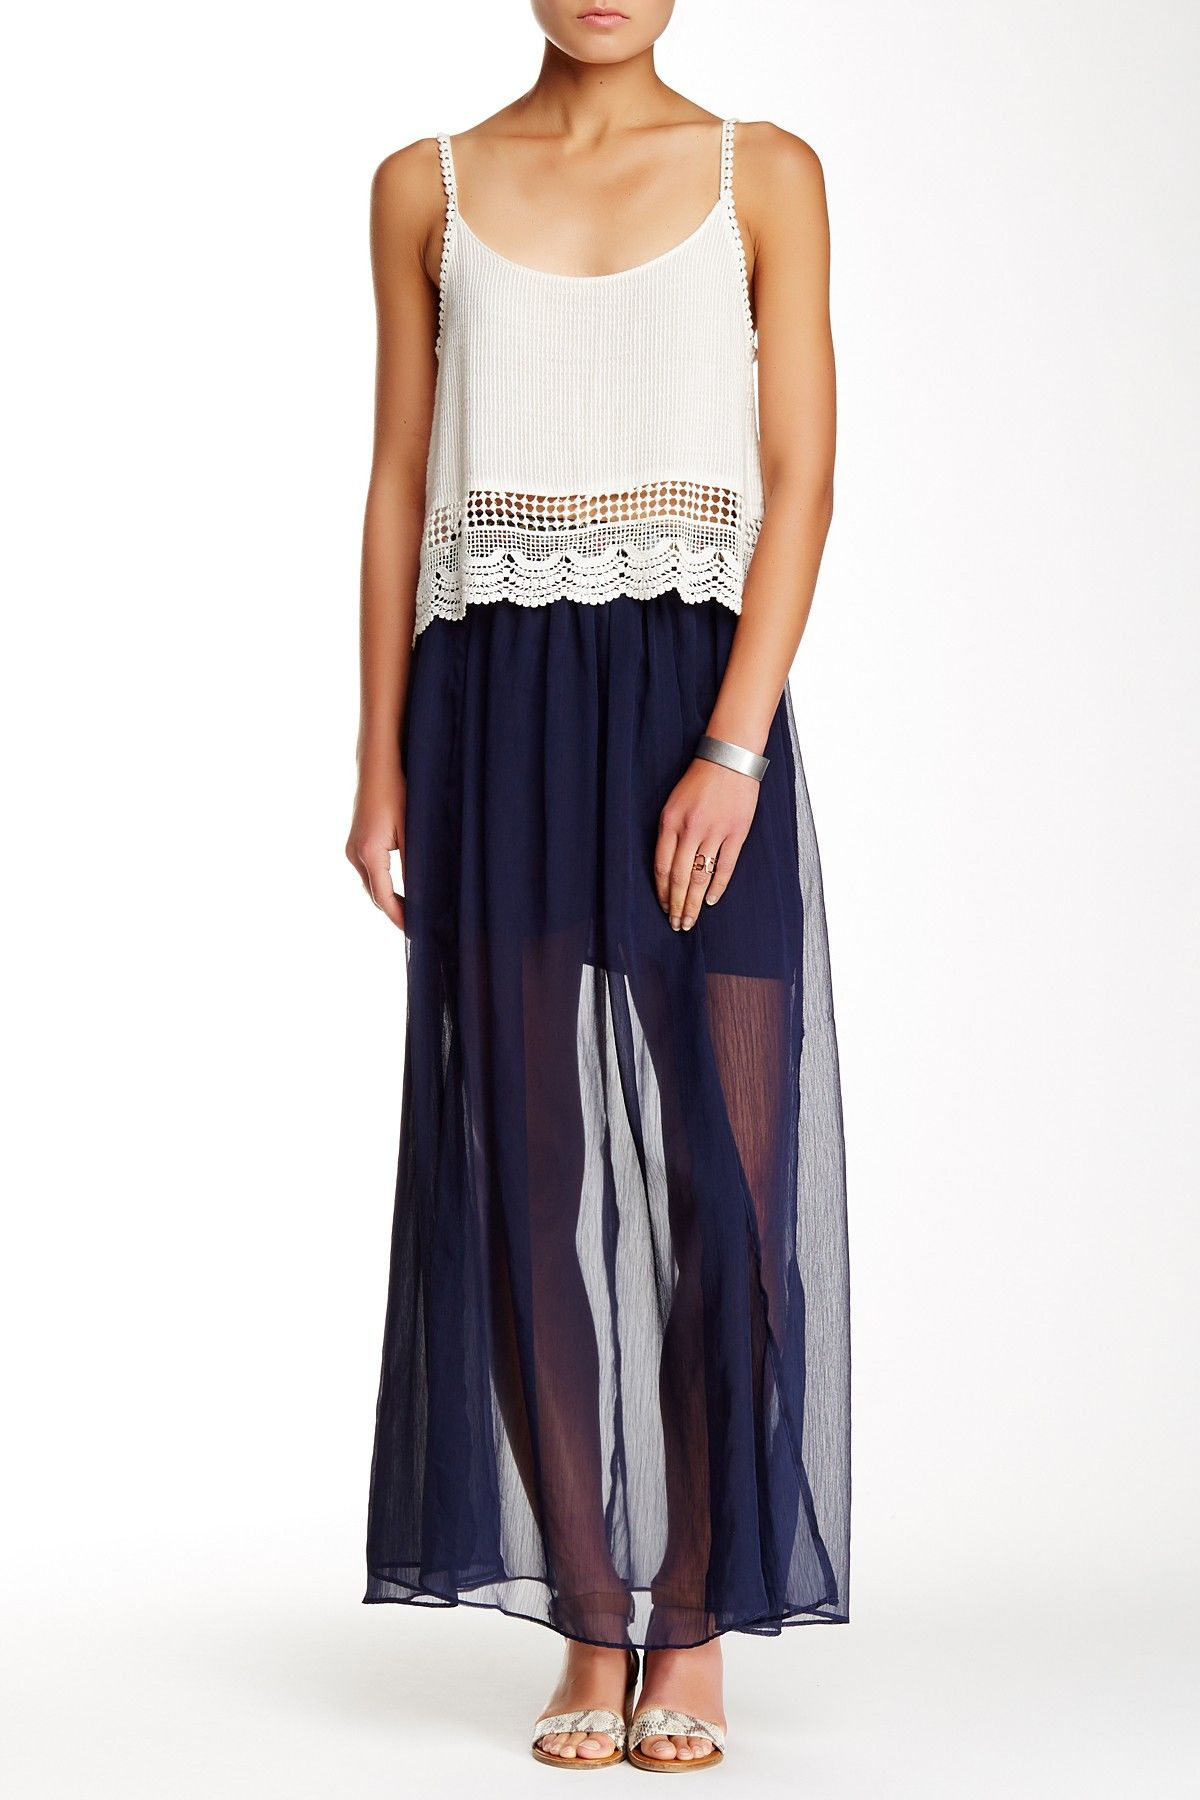 Blush noir embellished trim maxi skirt nordstrom free shipping